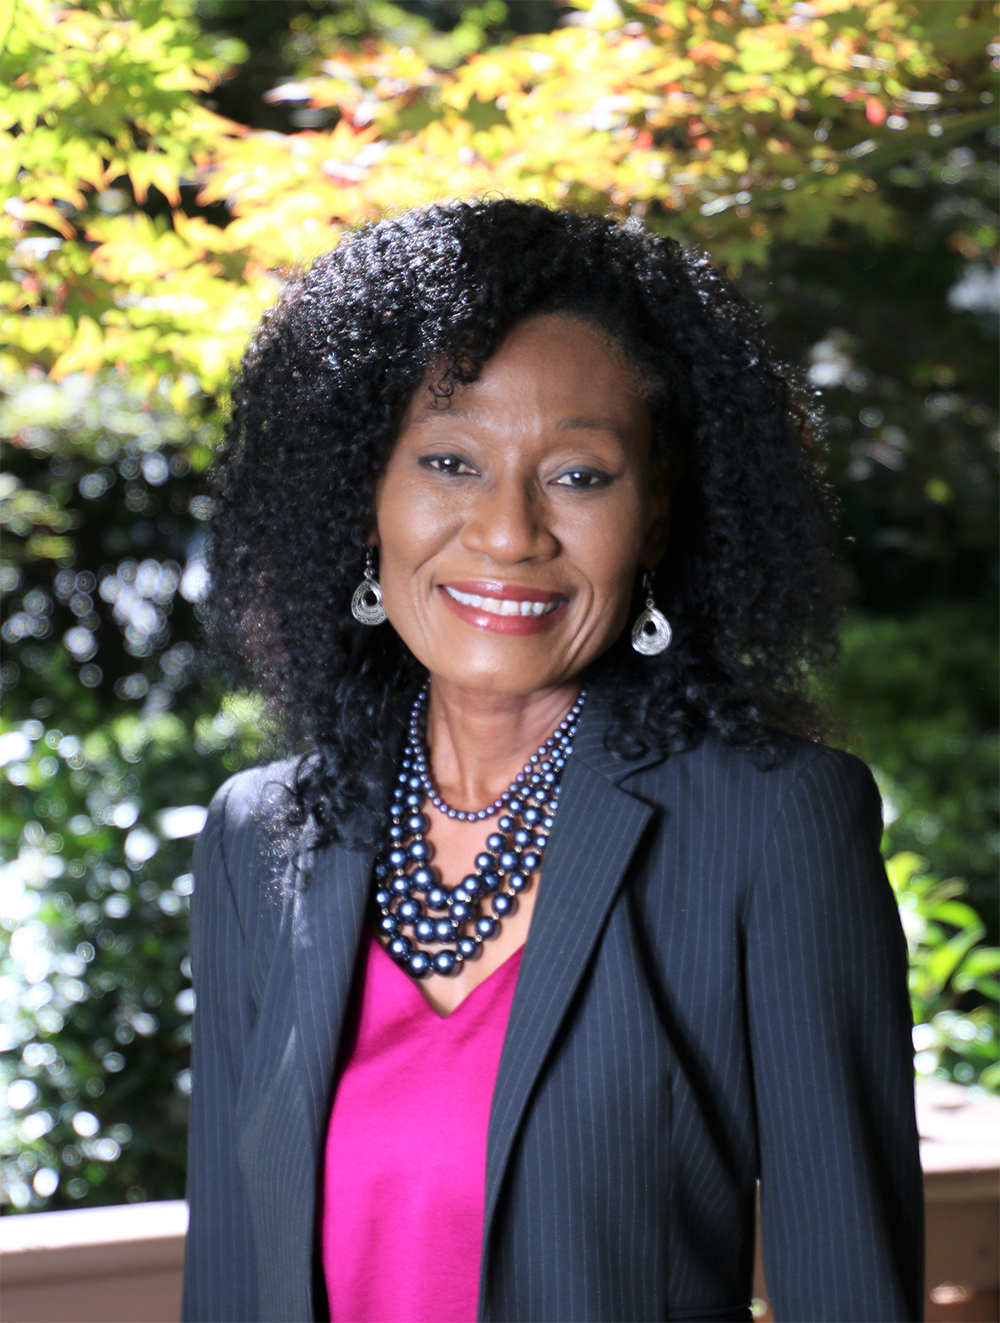 BASS Medical Group Appoints Inez Wondeh as Chief Executive Officer